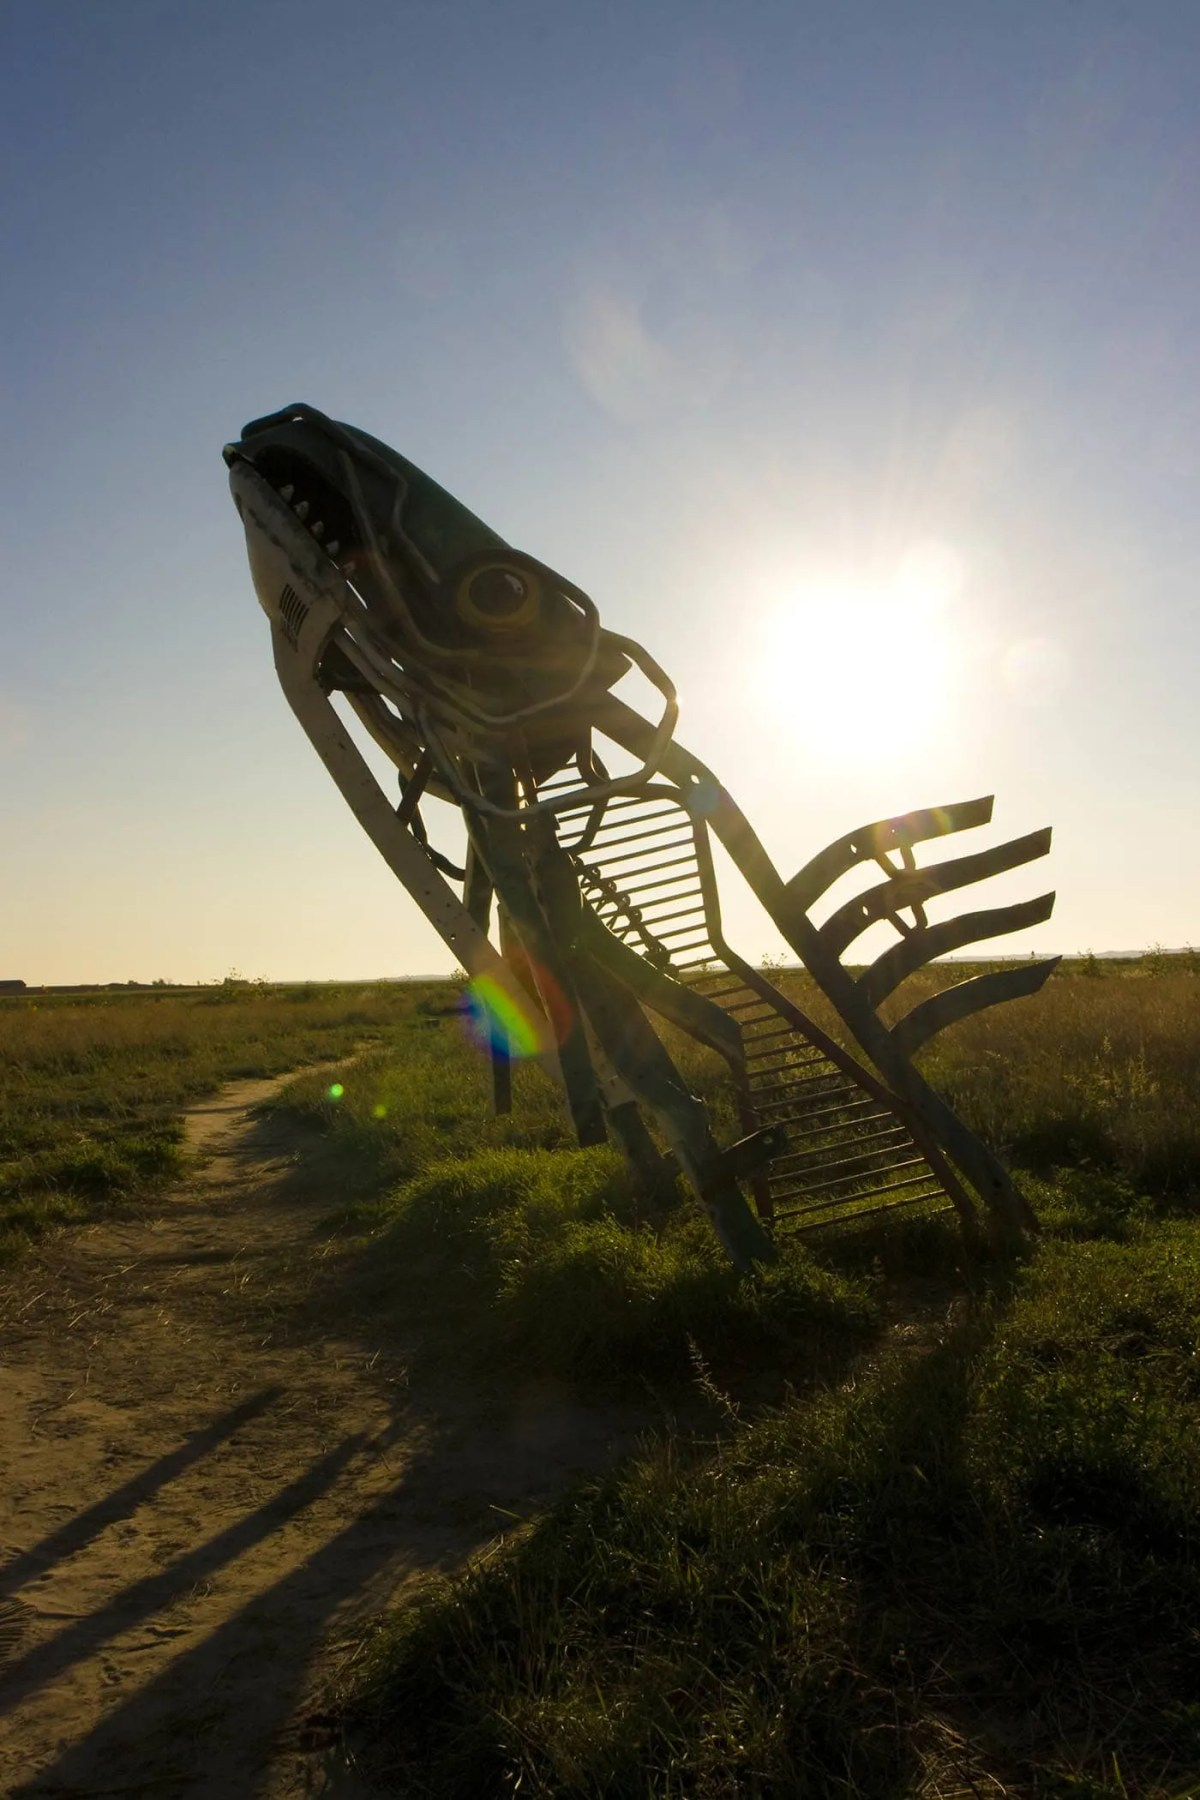 The Spawning Salmon sculpture at Carhenge Roadside Attraction in Alliance, Nebraska